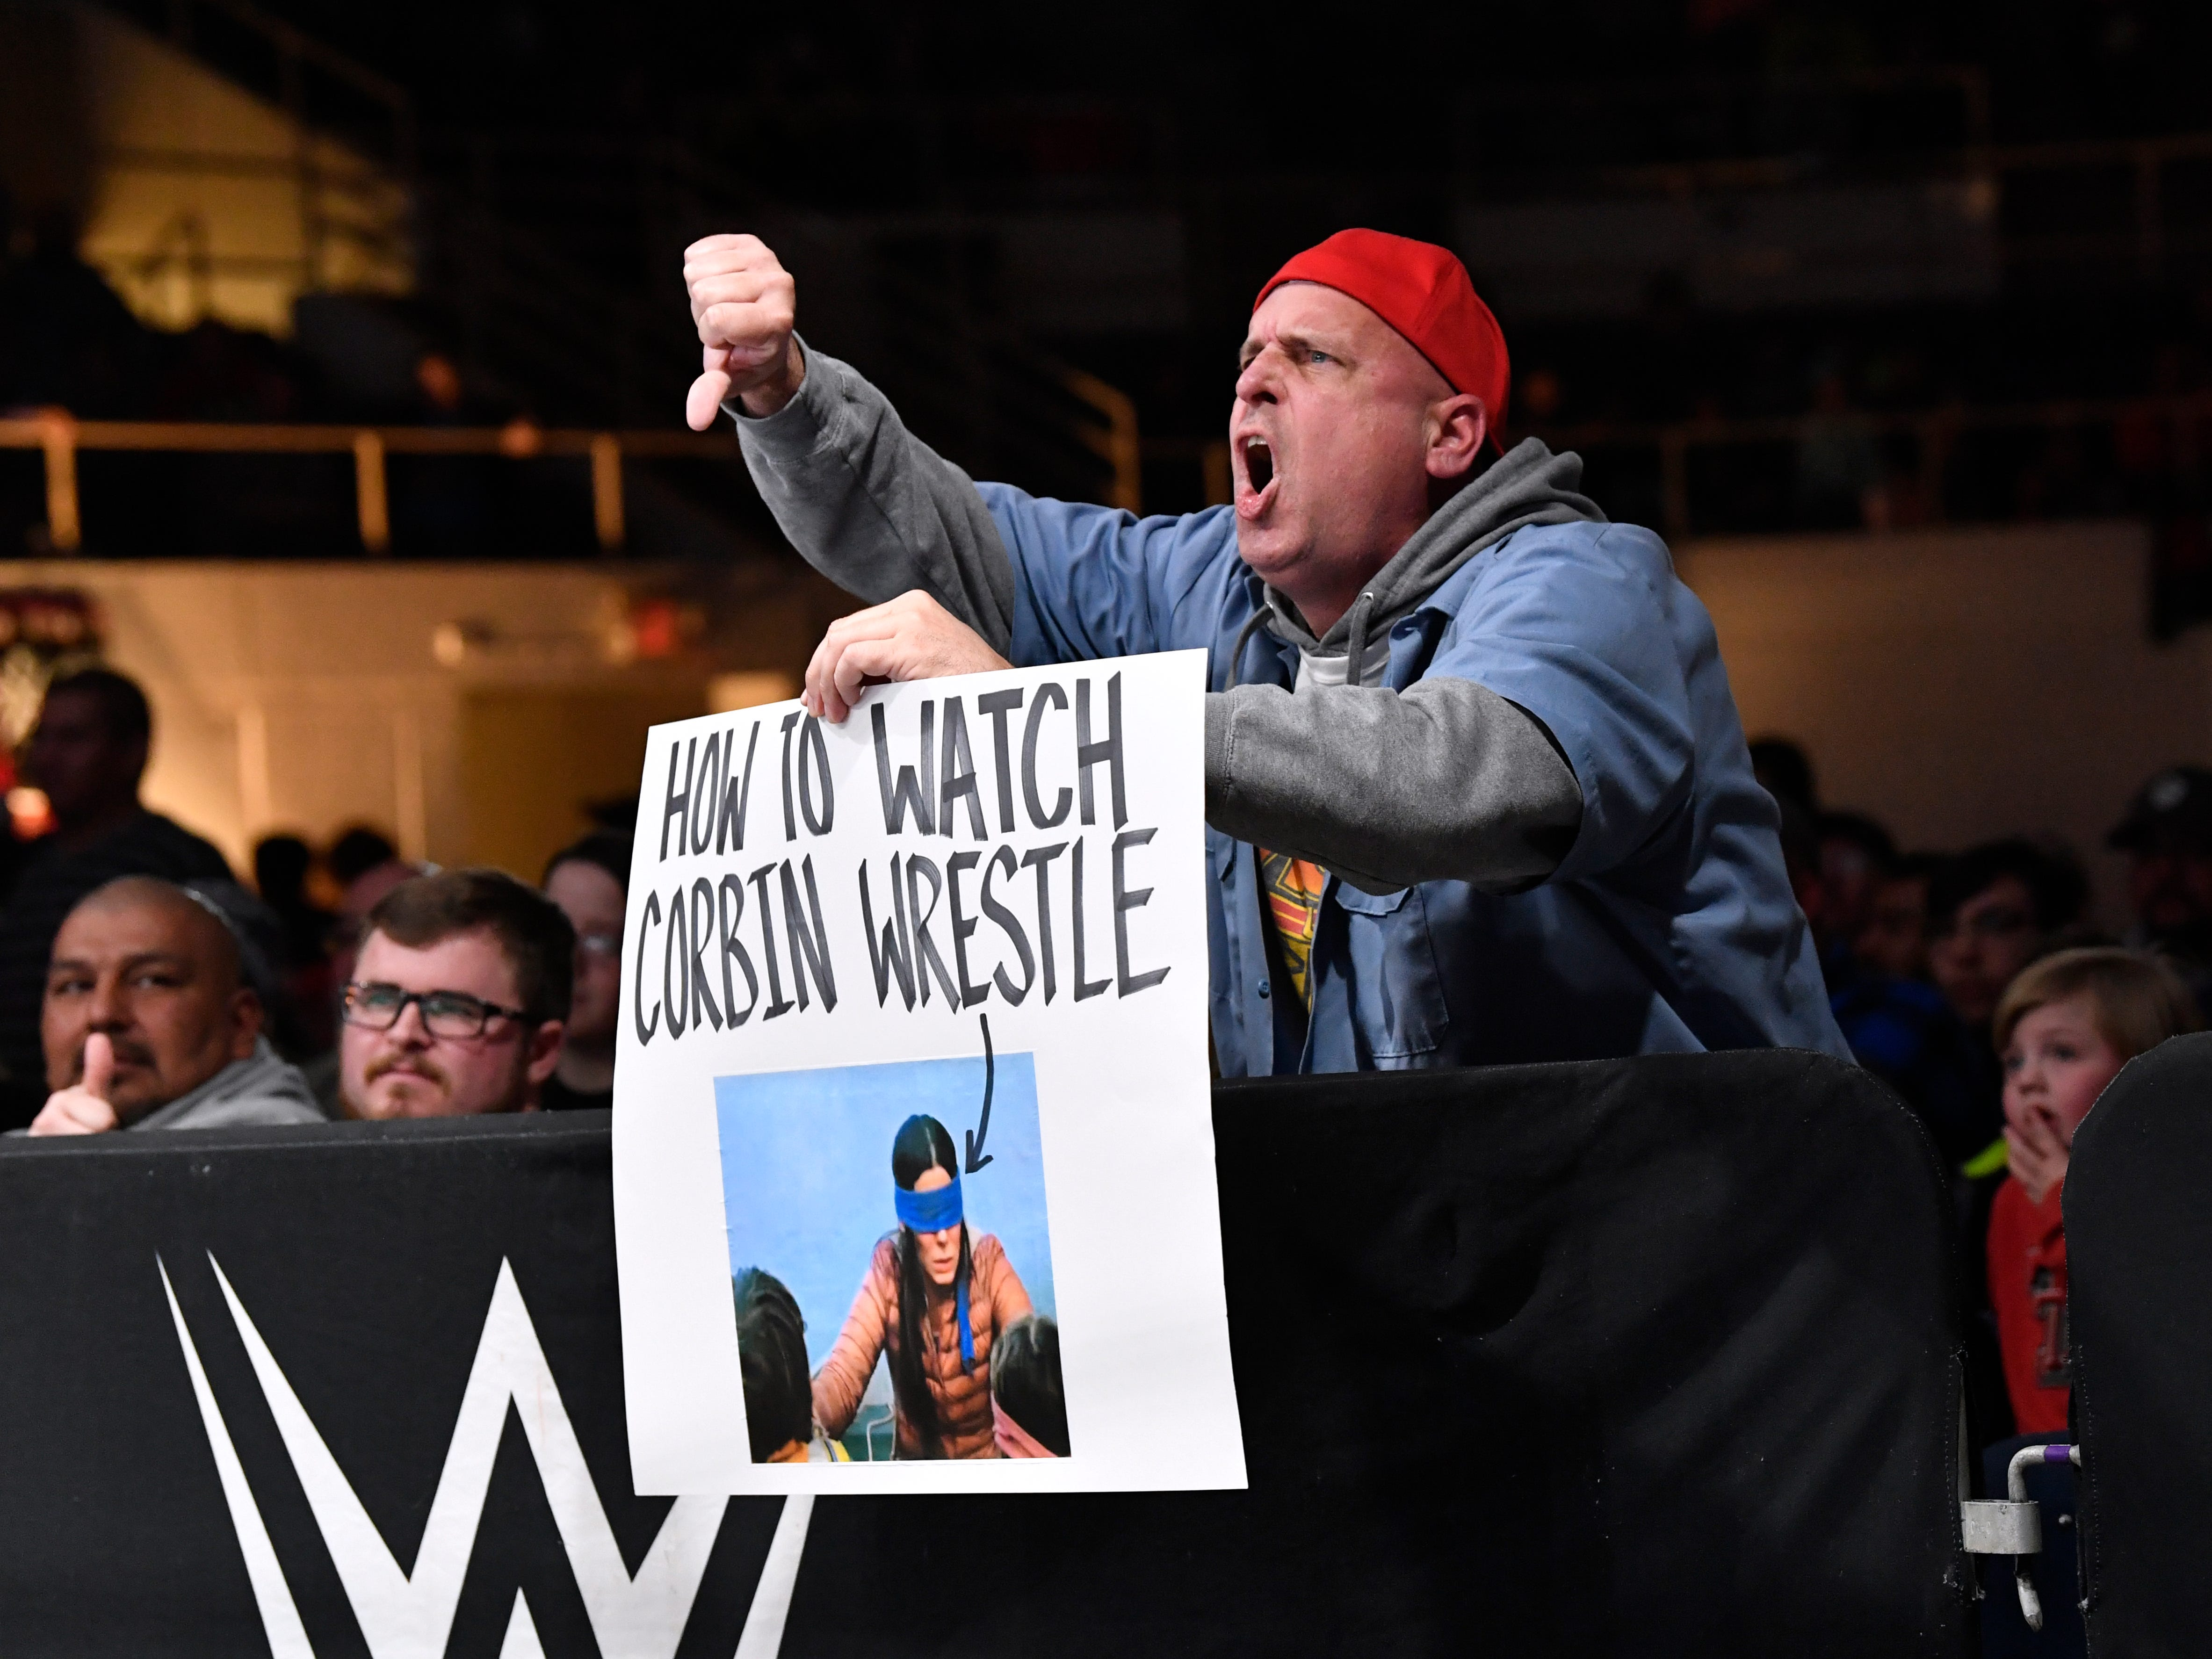 A fan taunts Baron Corbin with a homemade sign during Saturday's WWE Live wrestling event Jan. 19, 2019. Held at the Taylor County Coliseum, the evening featured a colorful array of World Wrestling Entertainment stars, including Mixed Martial Arts fighter Ronda Rousey.